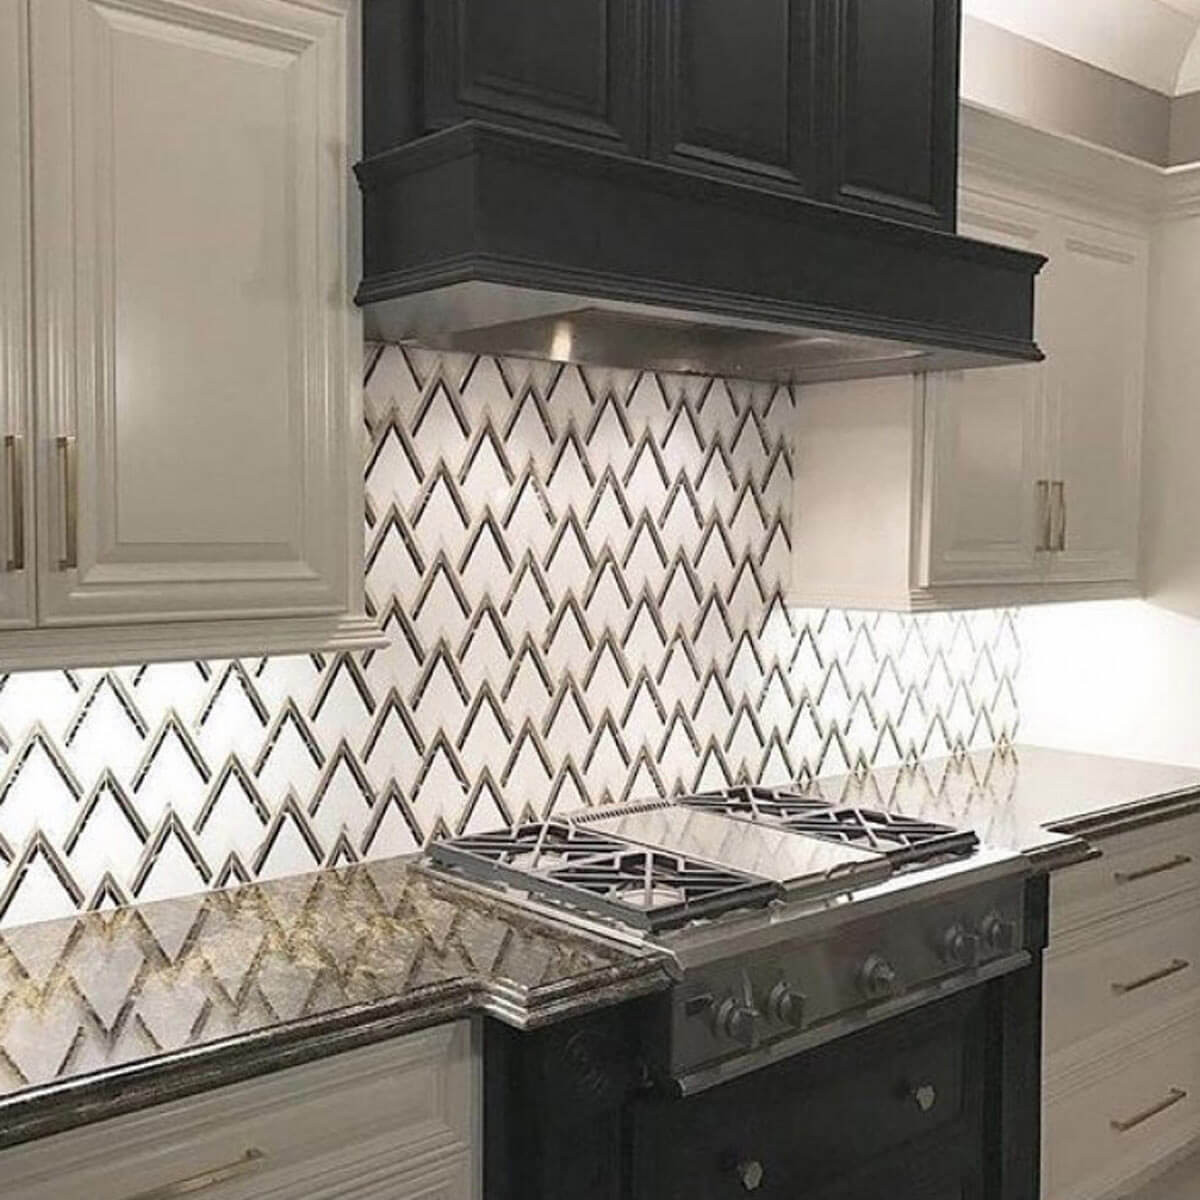 Kitchen Backsplash Design 14 Showstopping Tile Backsplash Ideas to Suit Any Style